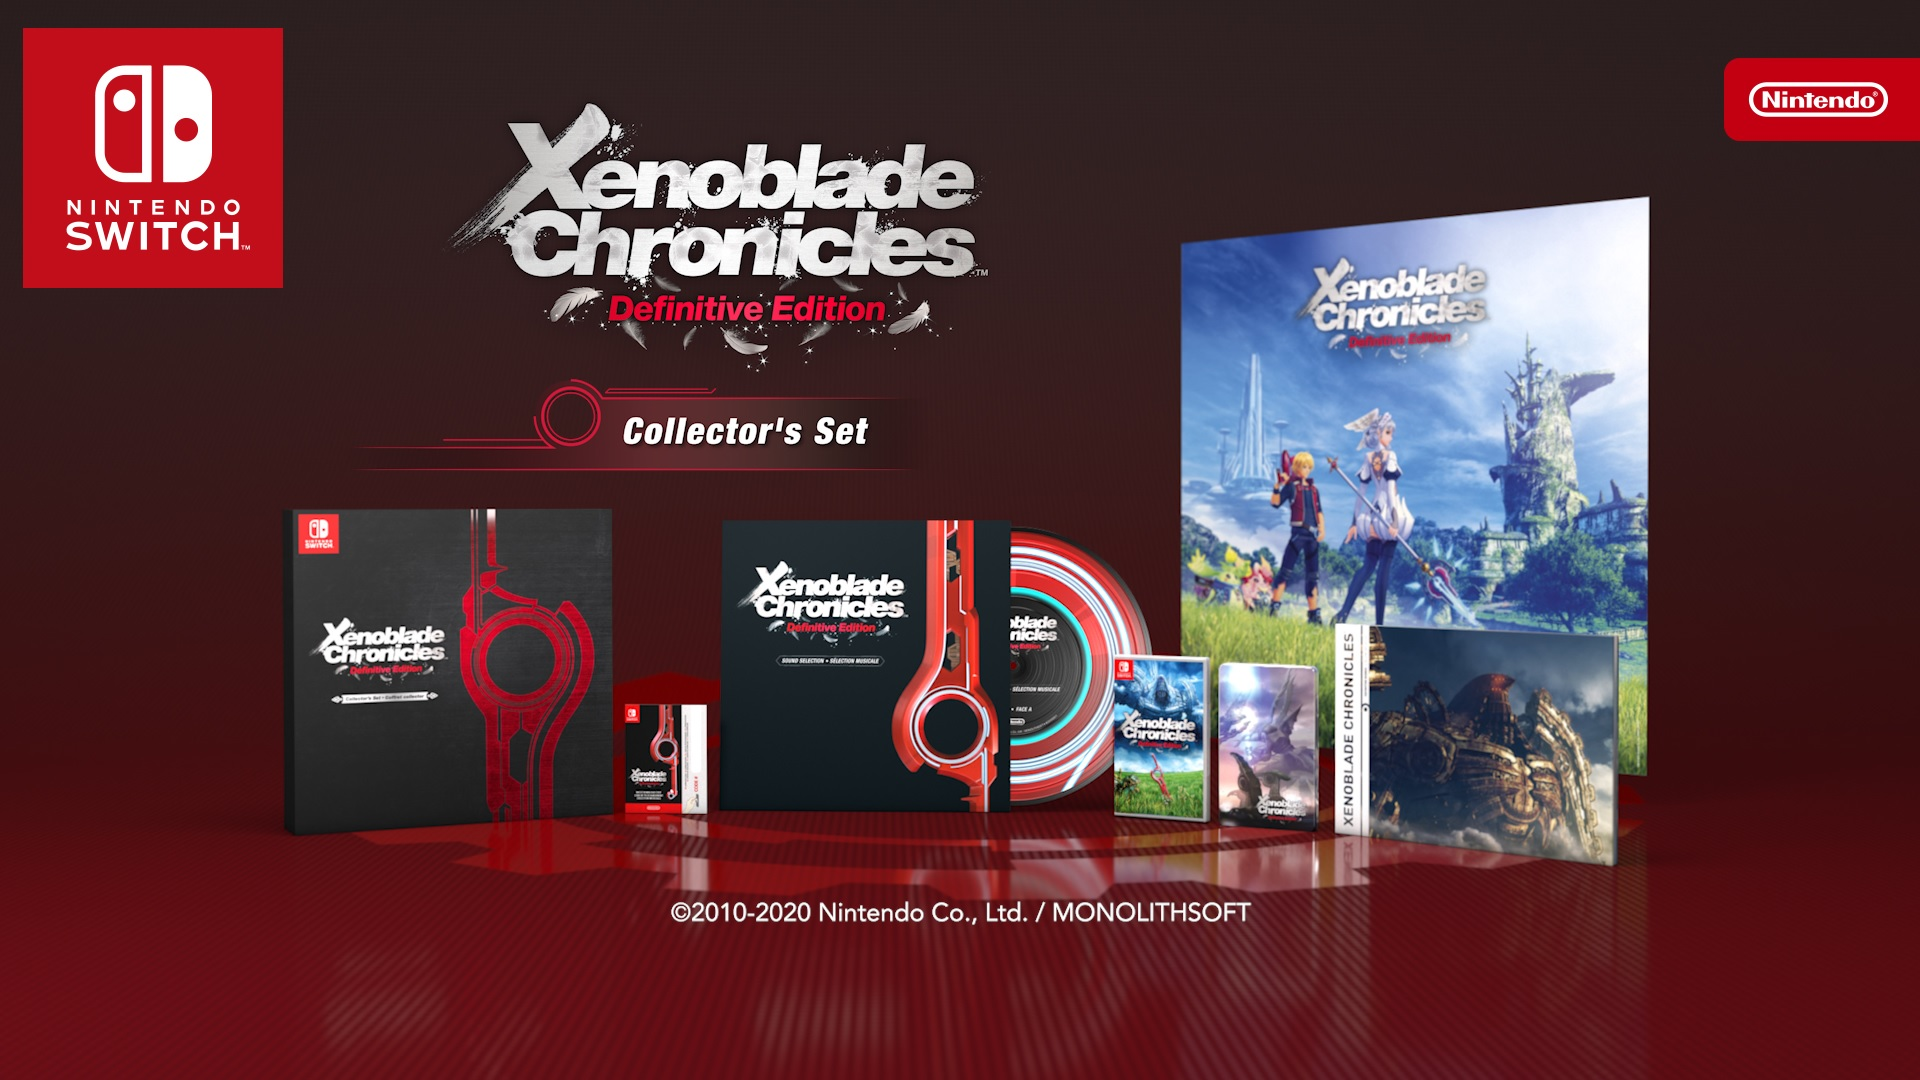 Xenoblade Chronicles Definitive Edition Collector's Set